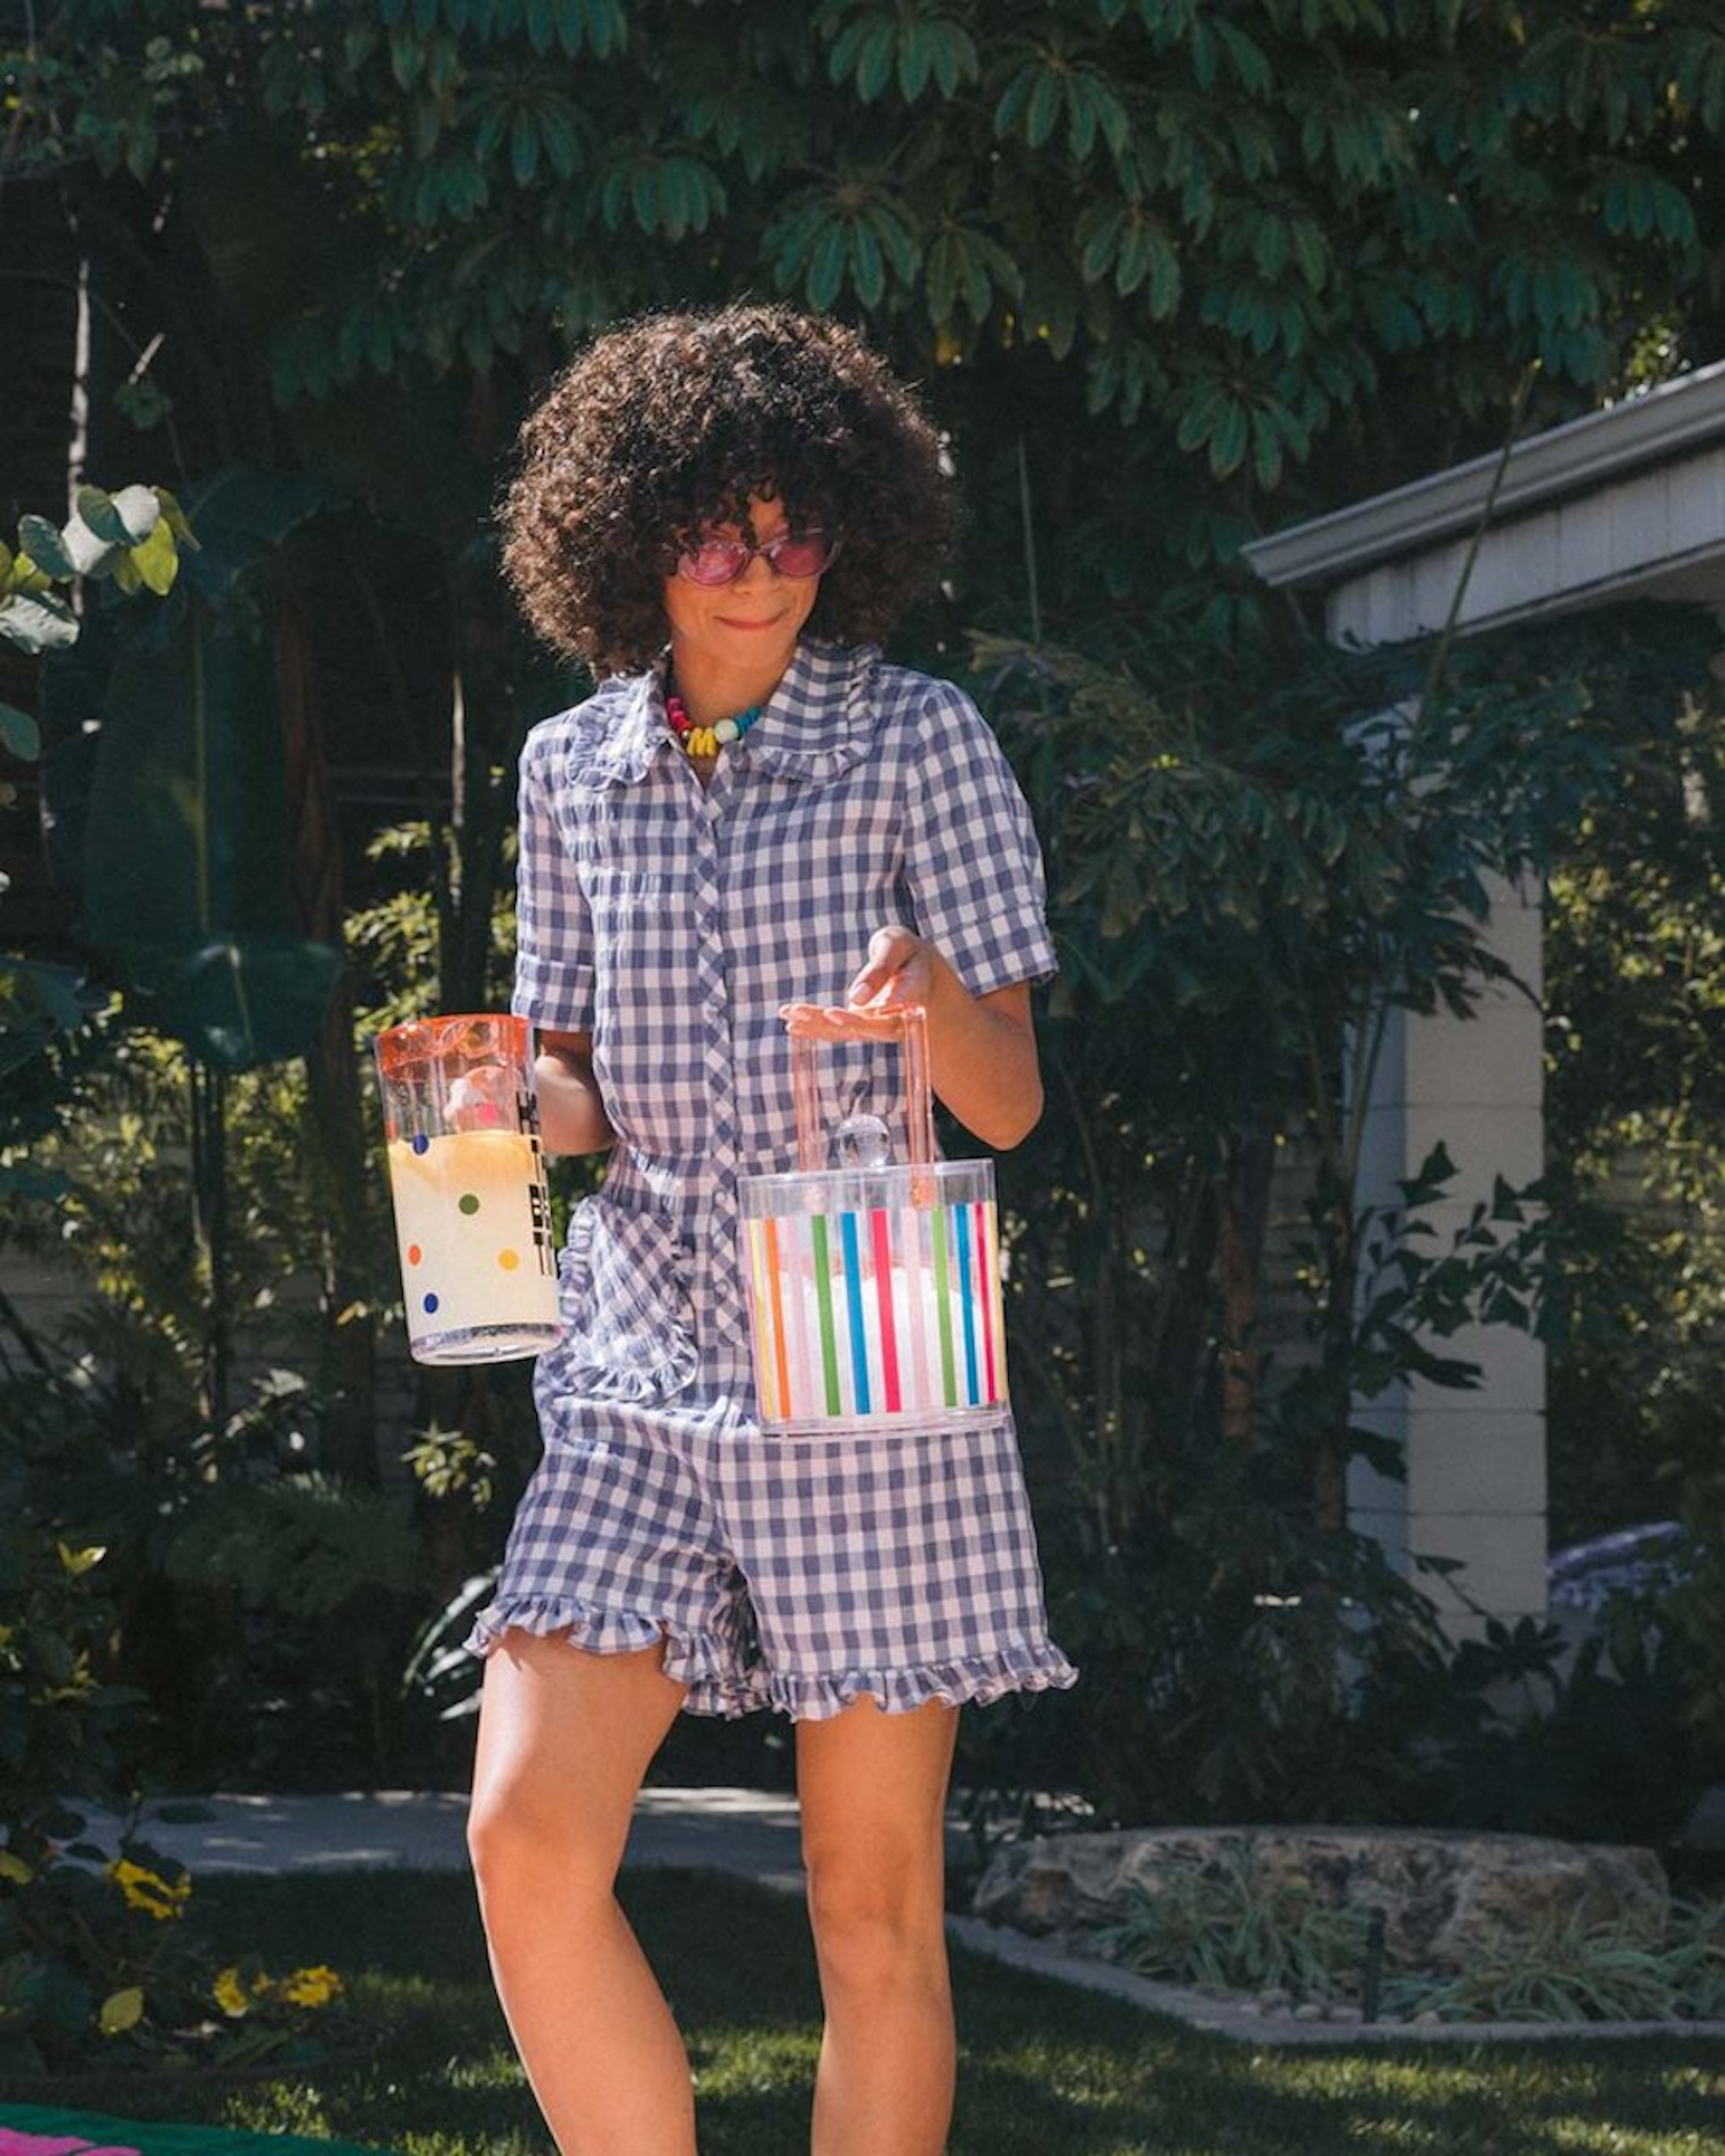 12 BBQ Outfit Ideas, From Saucy To Smokin' Hot